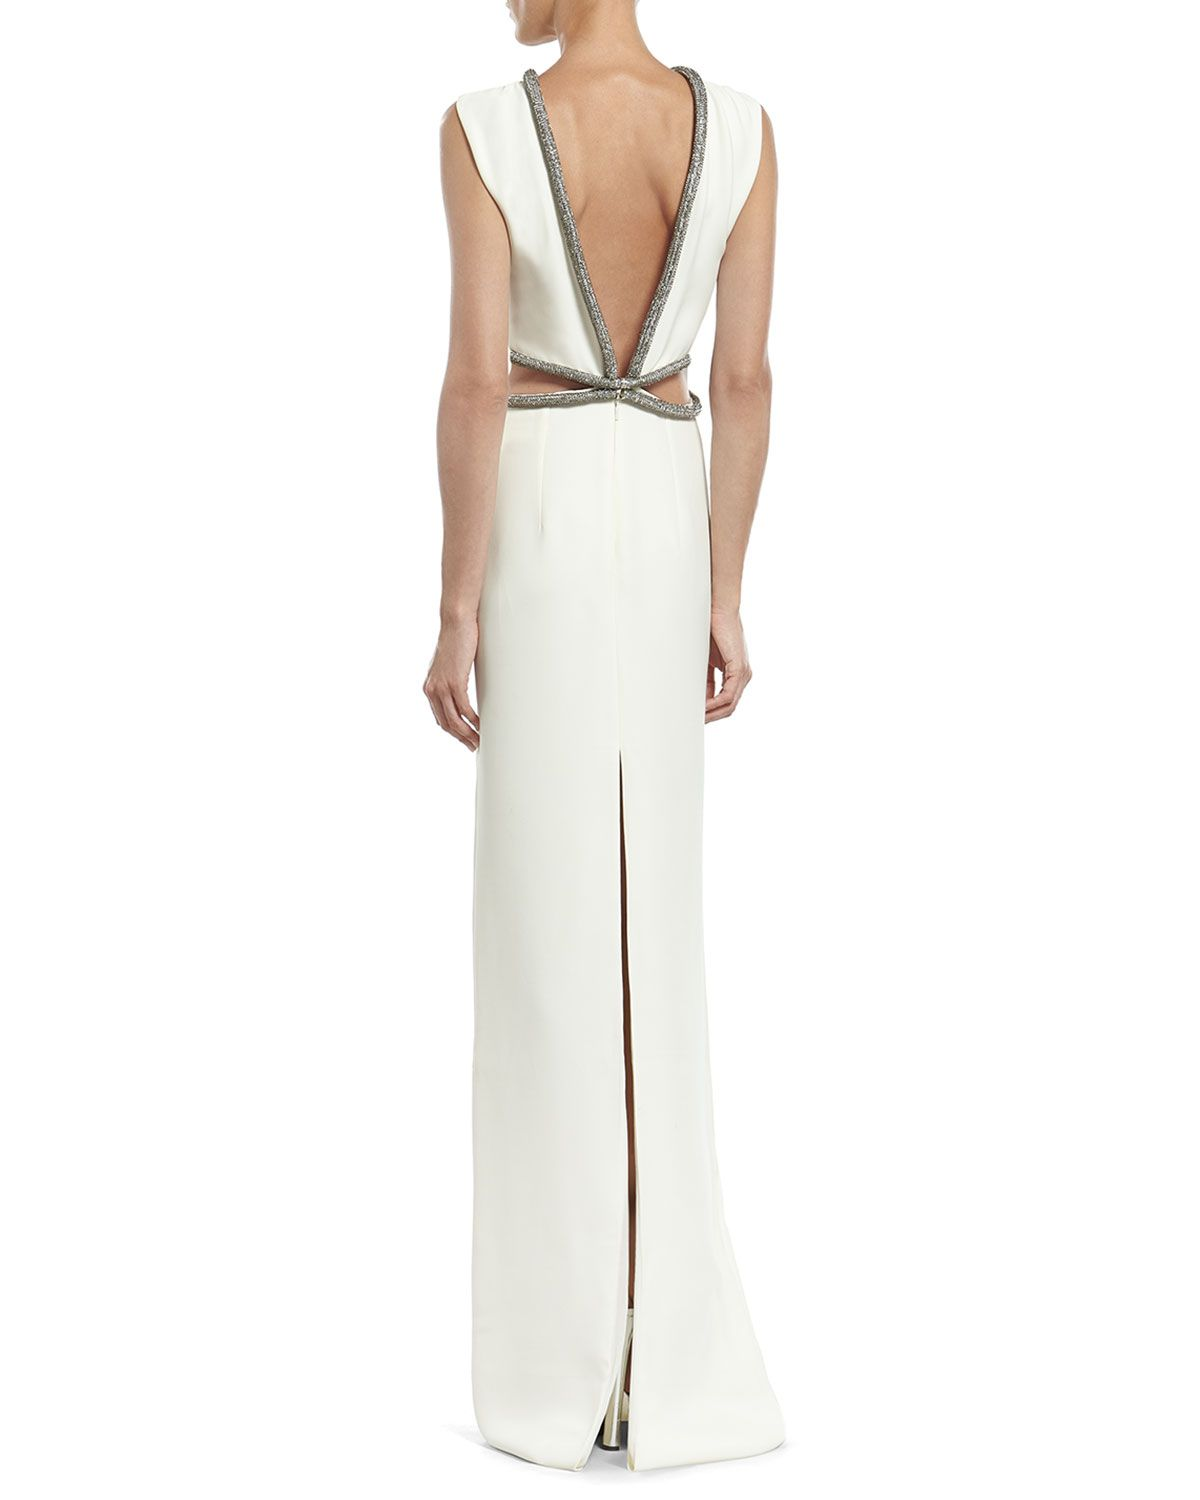 Neiman marcus dresses for weddings  Gucci White Silk Cady Gown with Crystal Tube Embroidery  vestido